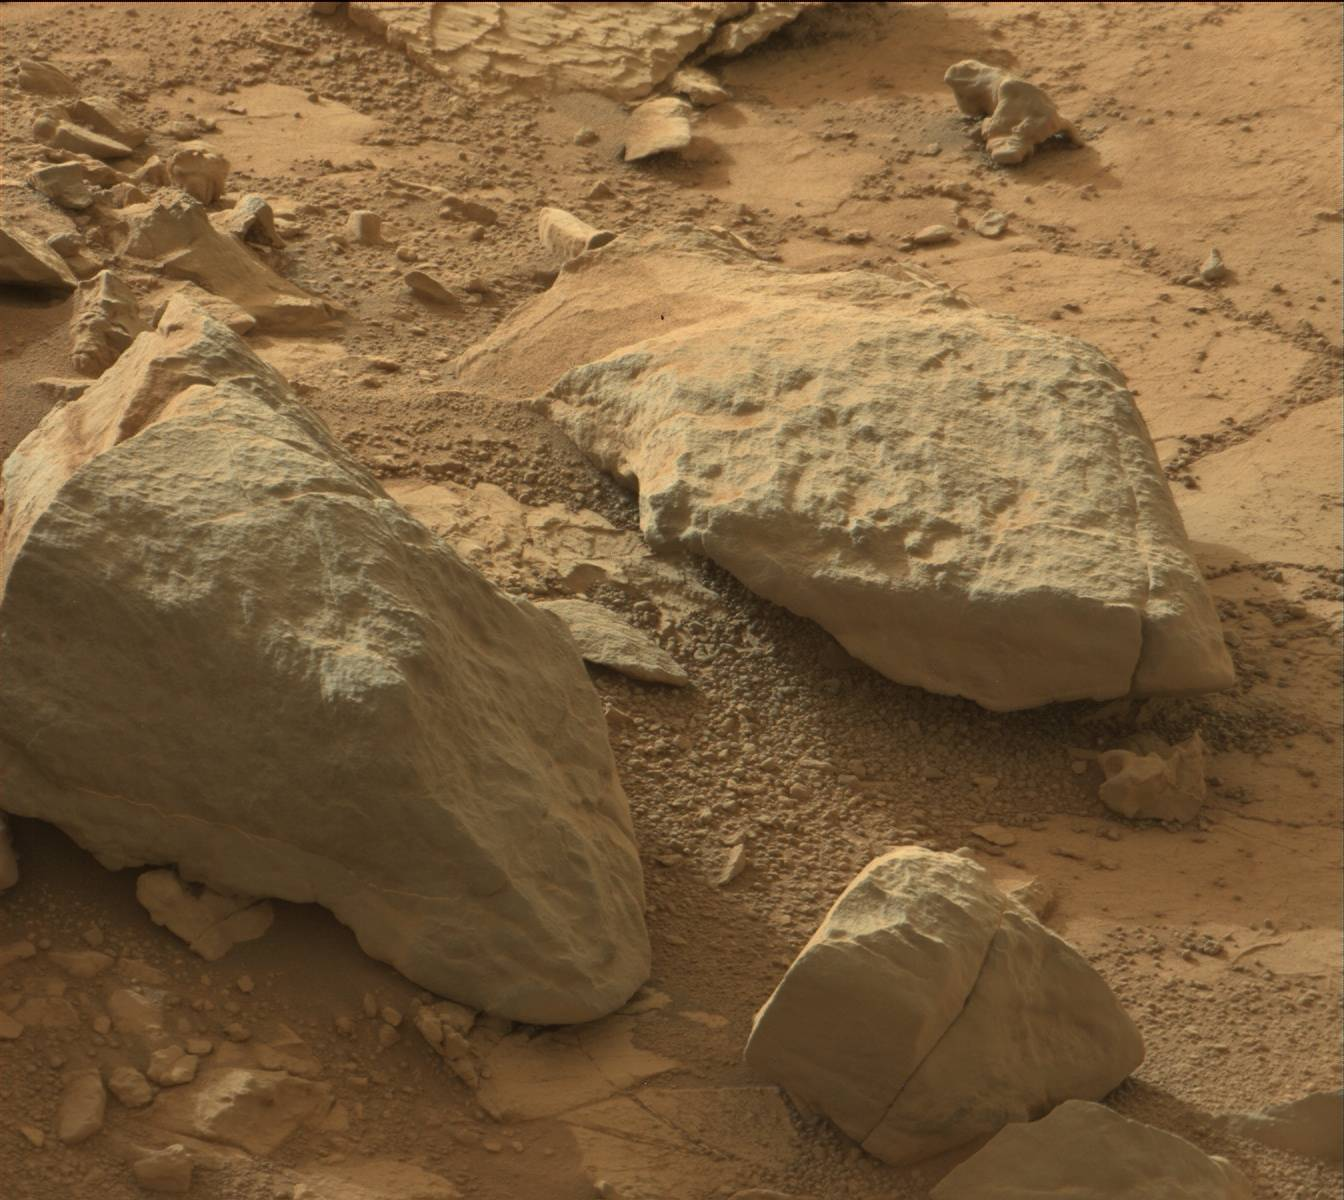 Mars 'Lizard' Photographed by Curiosity Rover